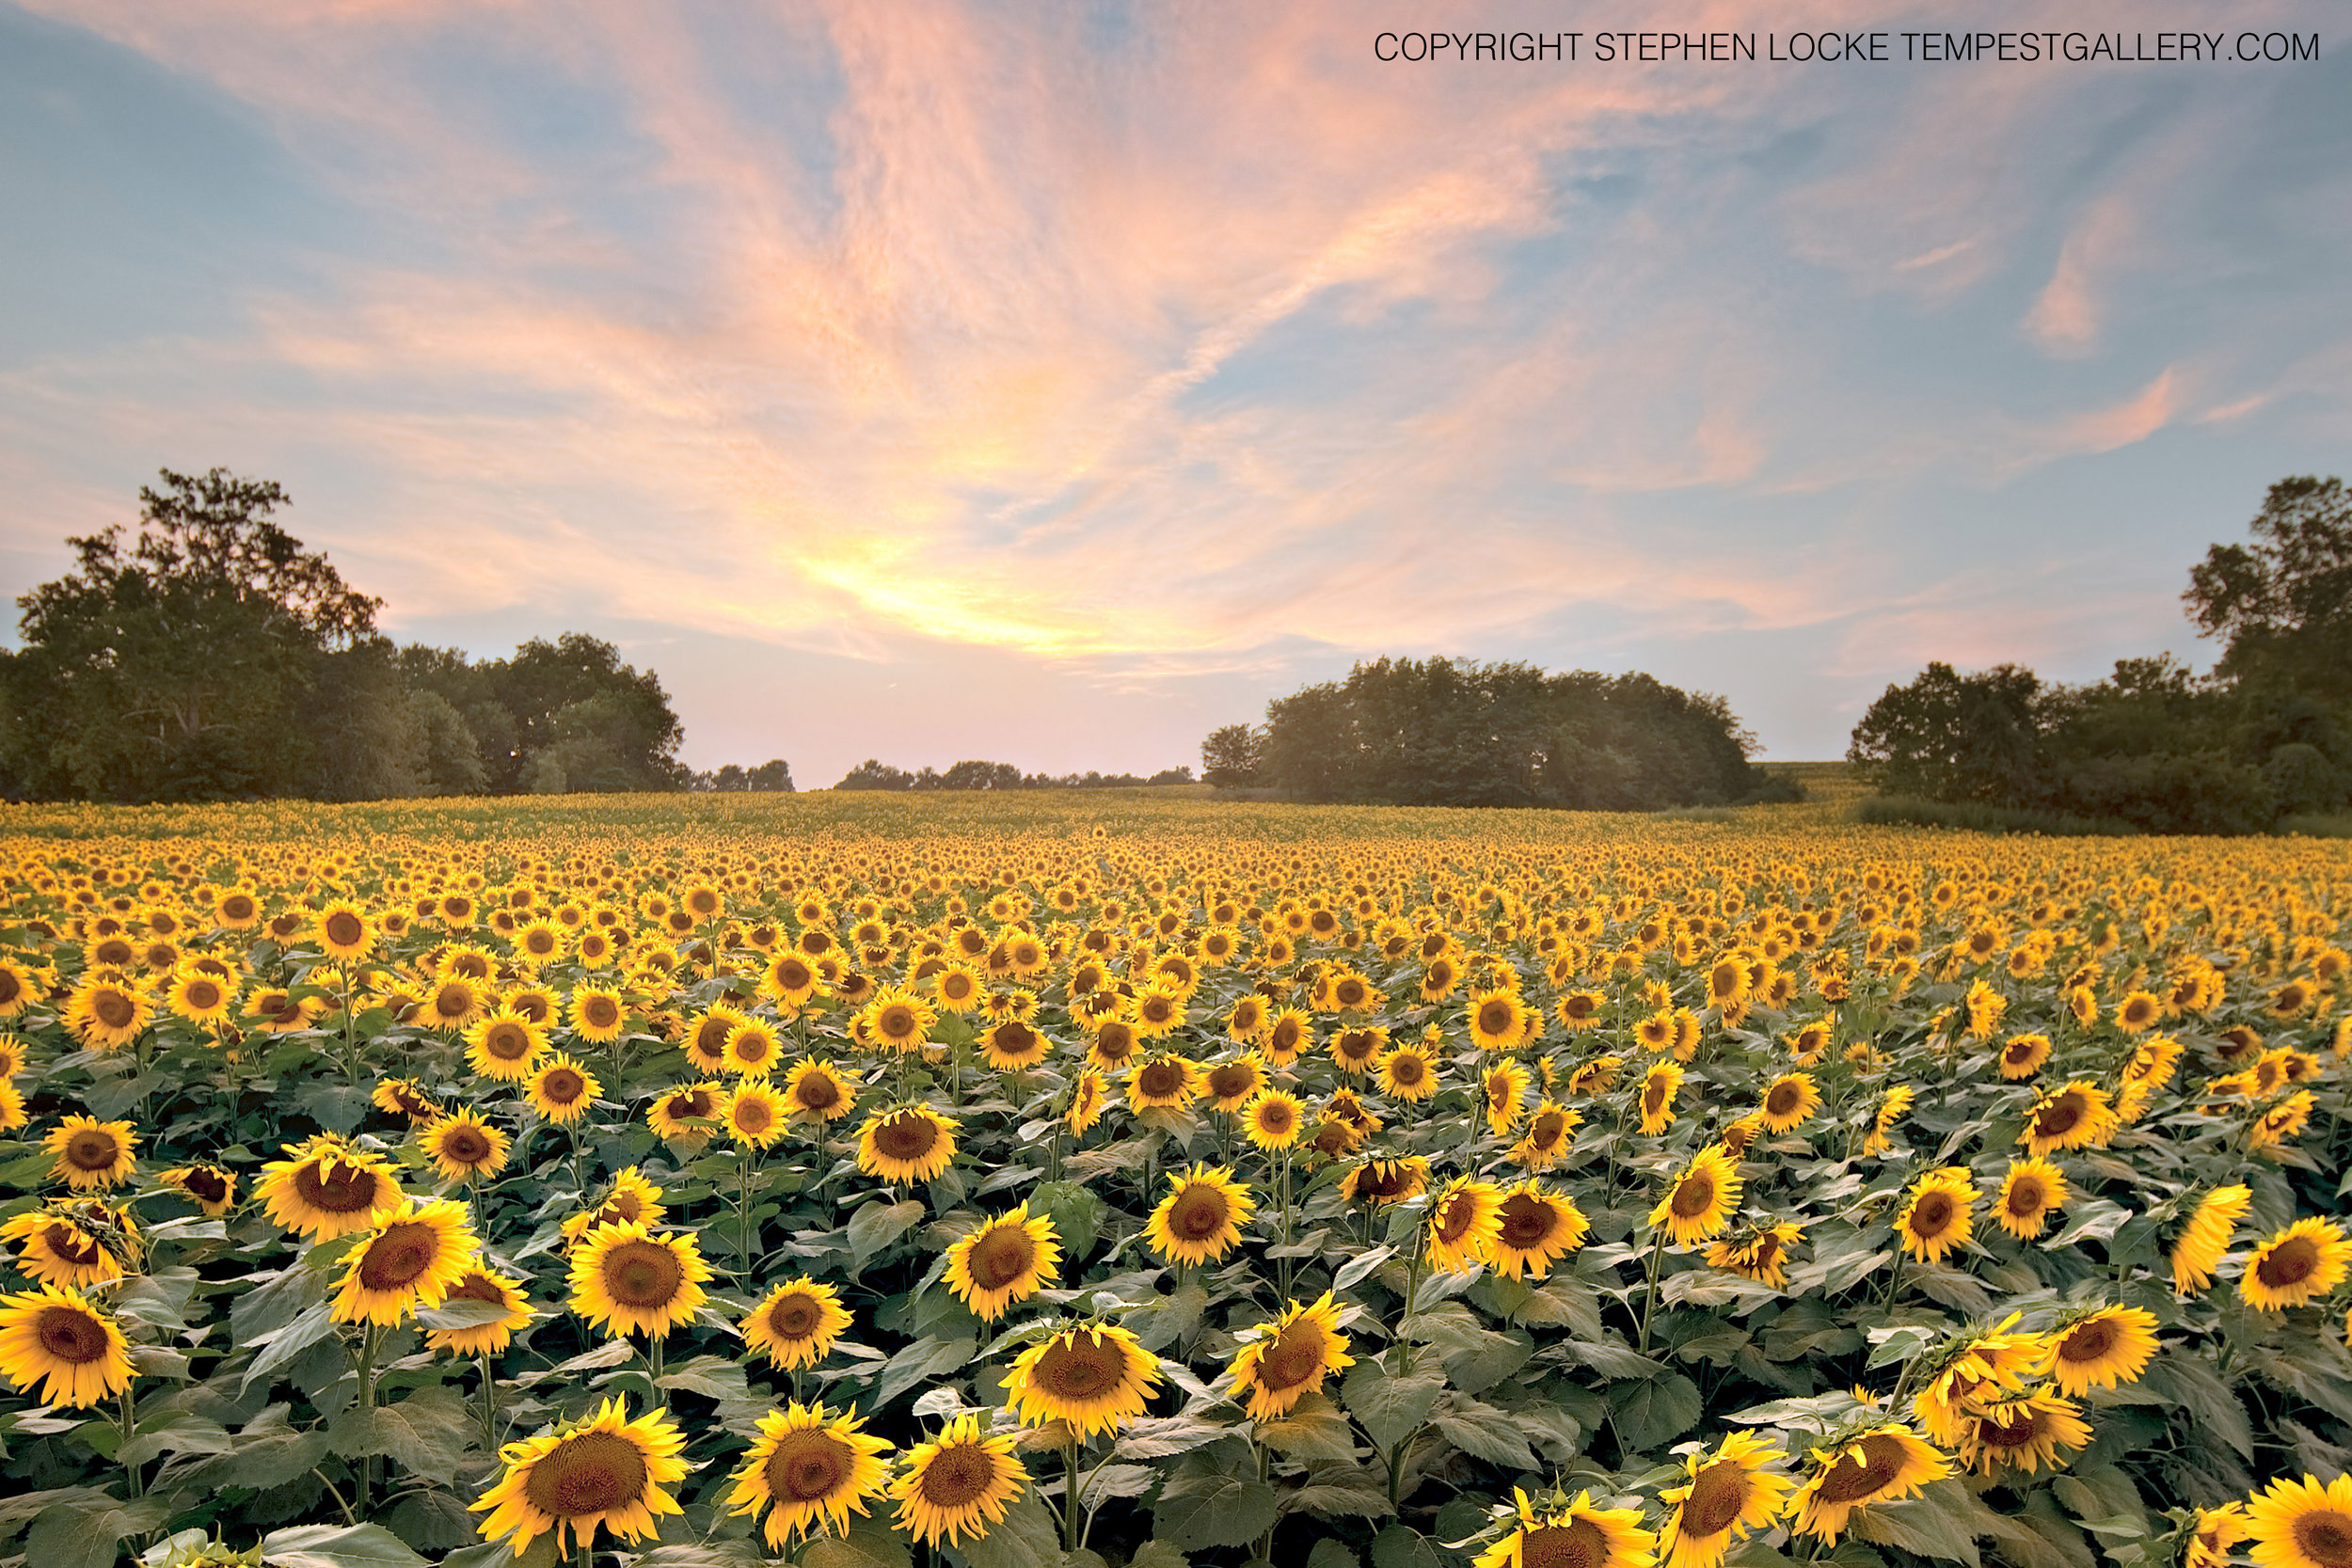 Eventide Helianthus by Stephen Locke